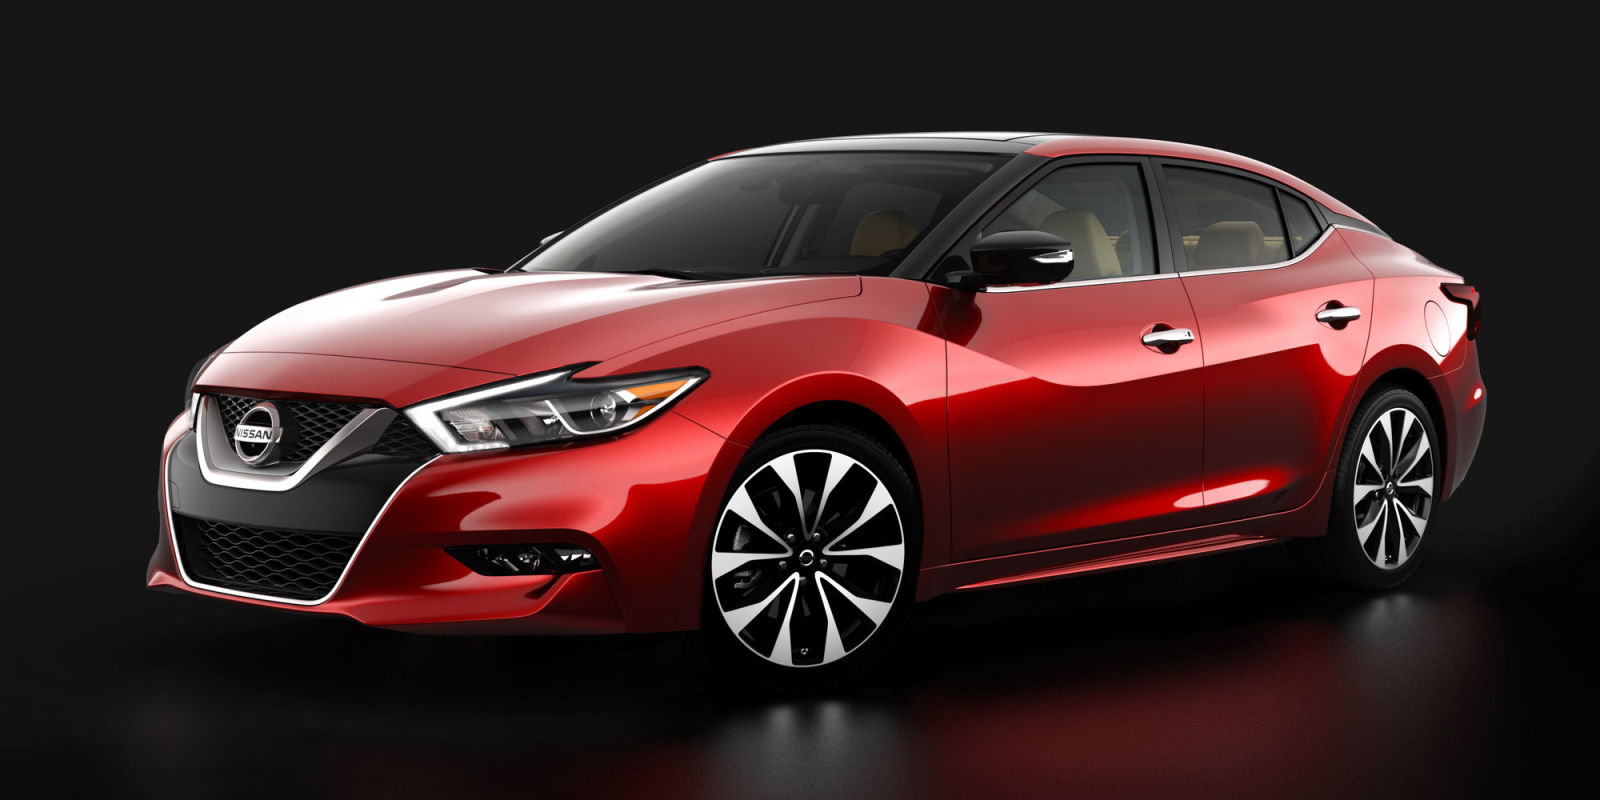 2016 Nissan Maxima Revealed In Super Bowl Ad